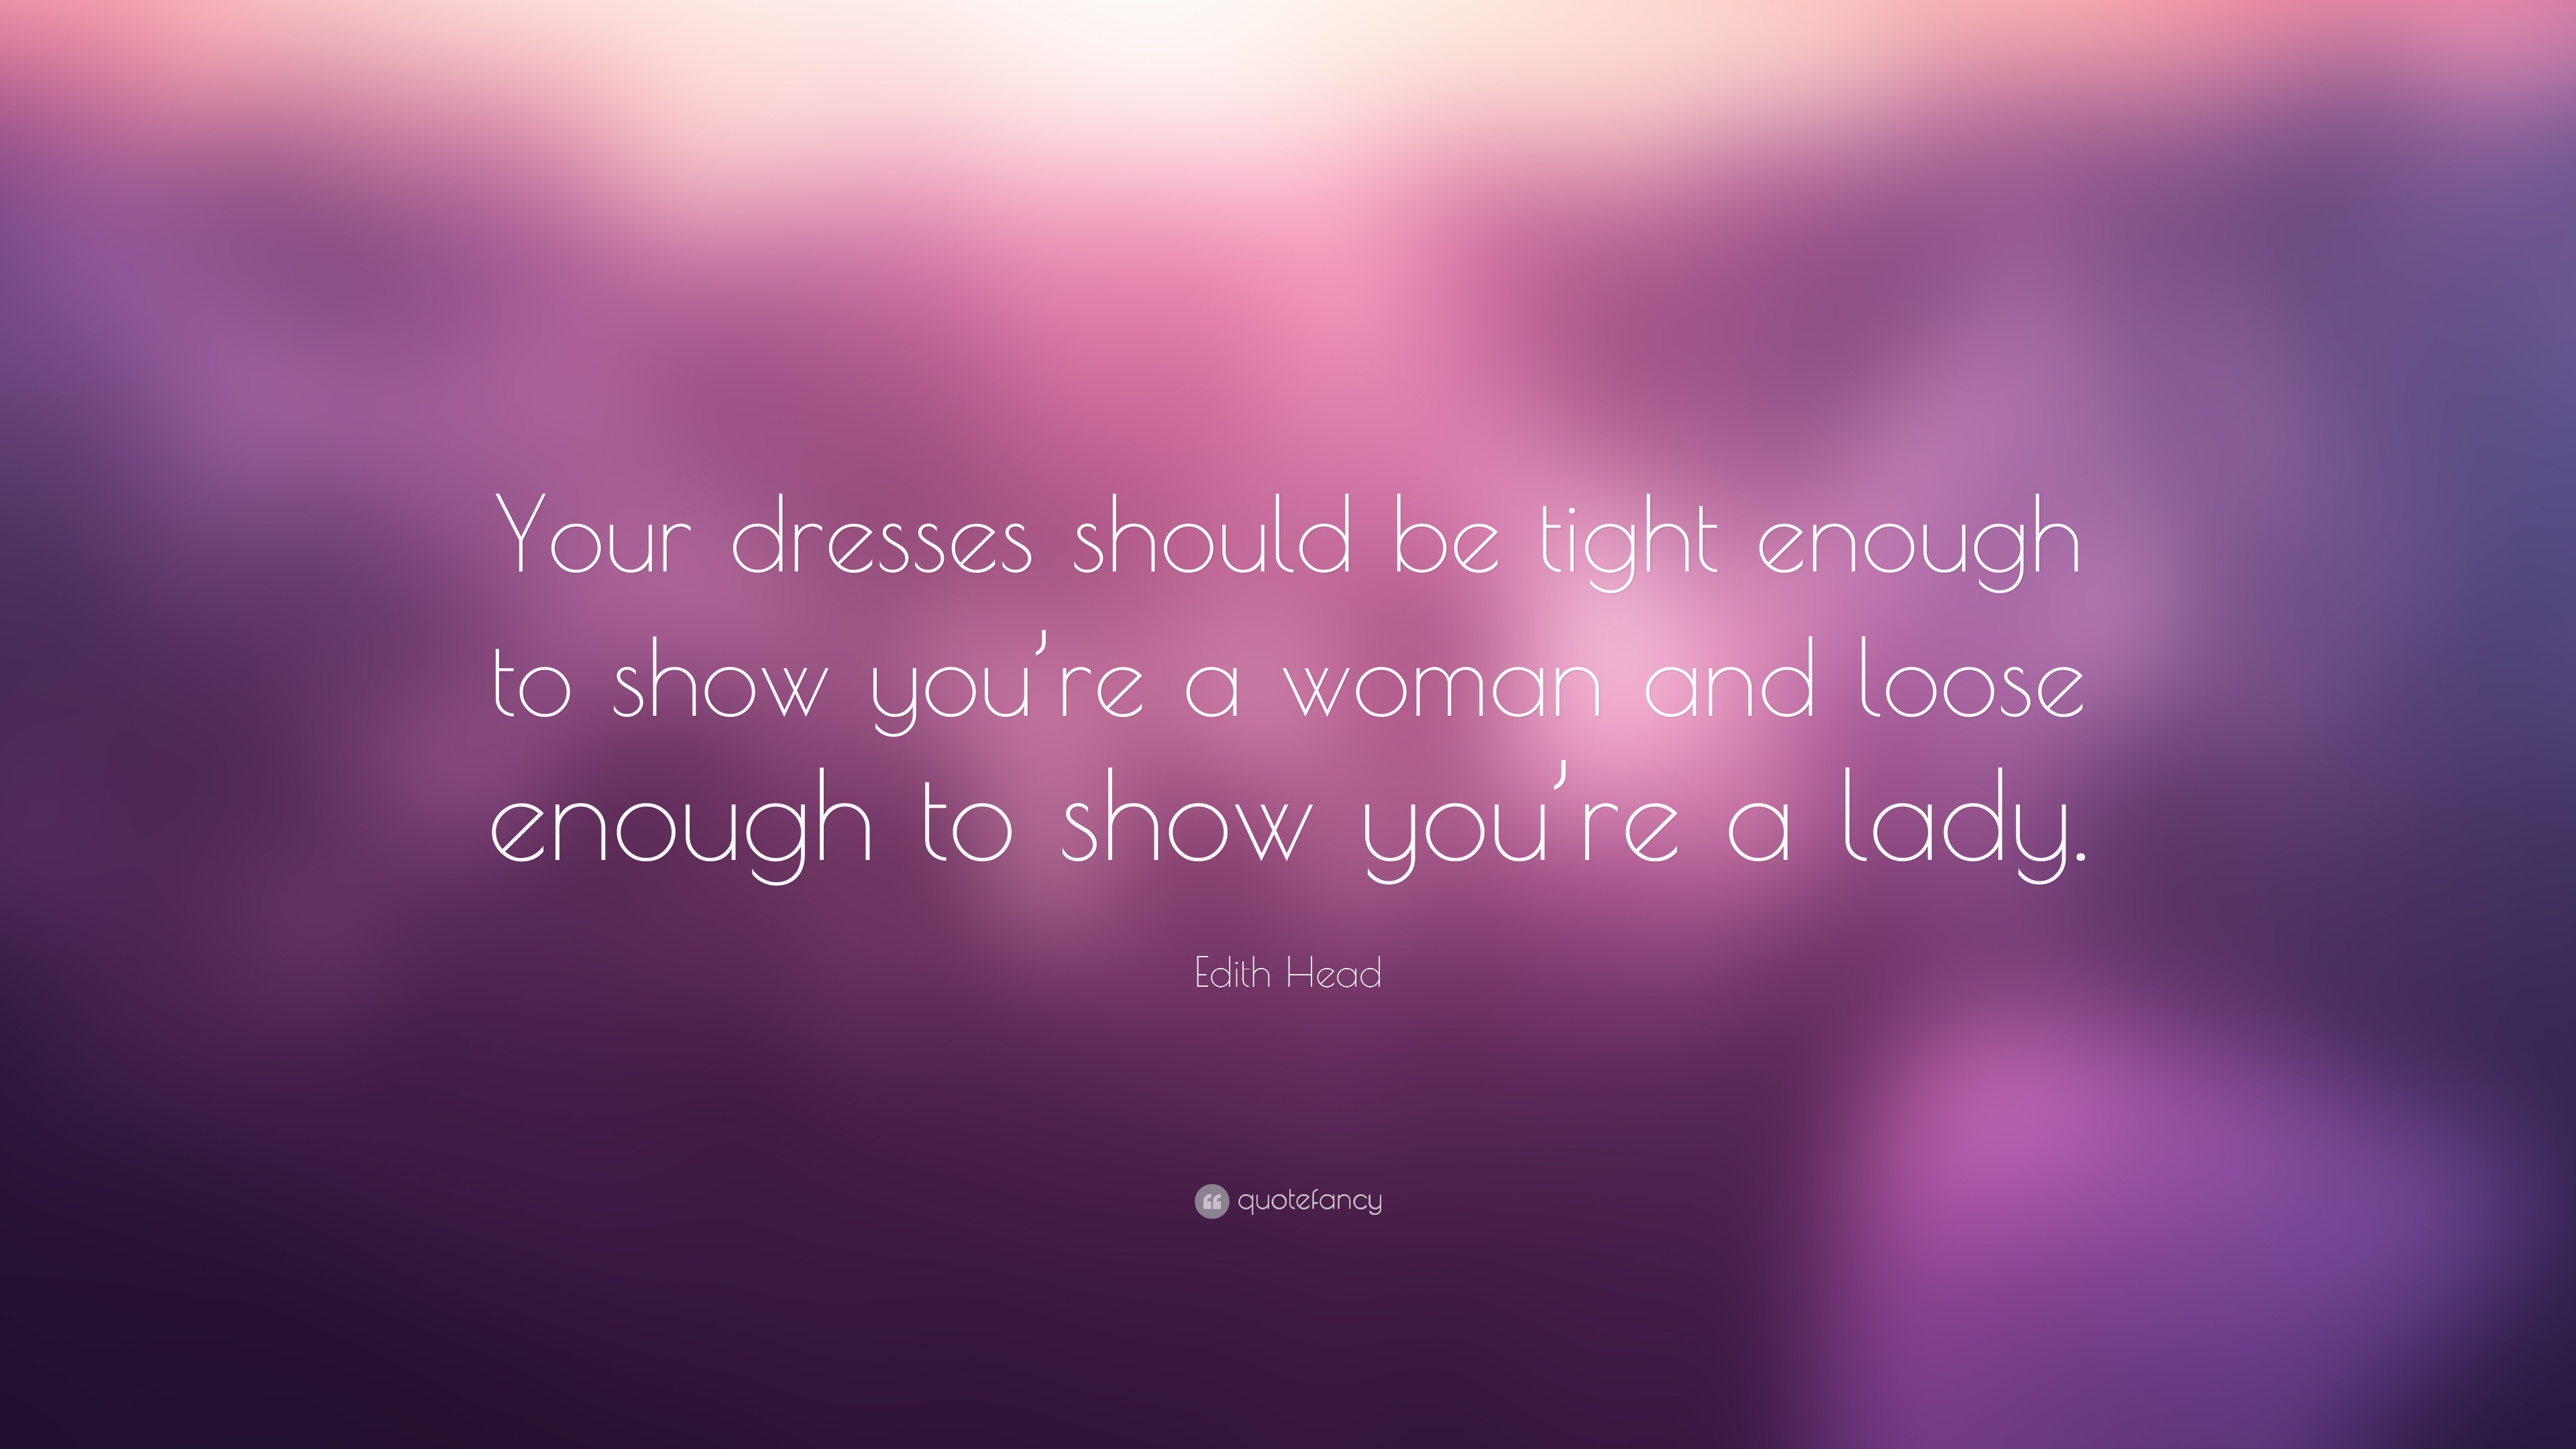 Quotes On Dresses